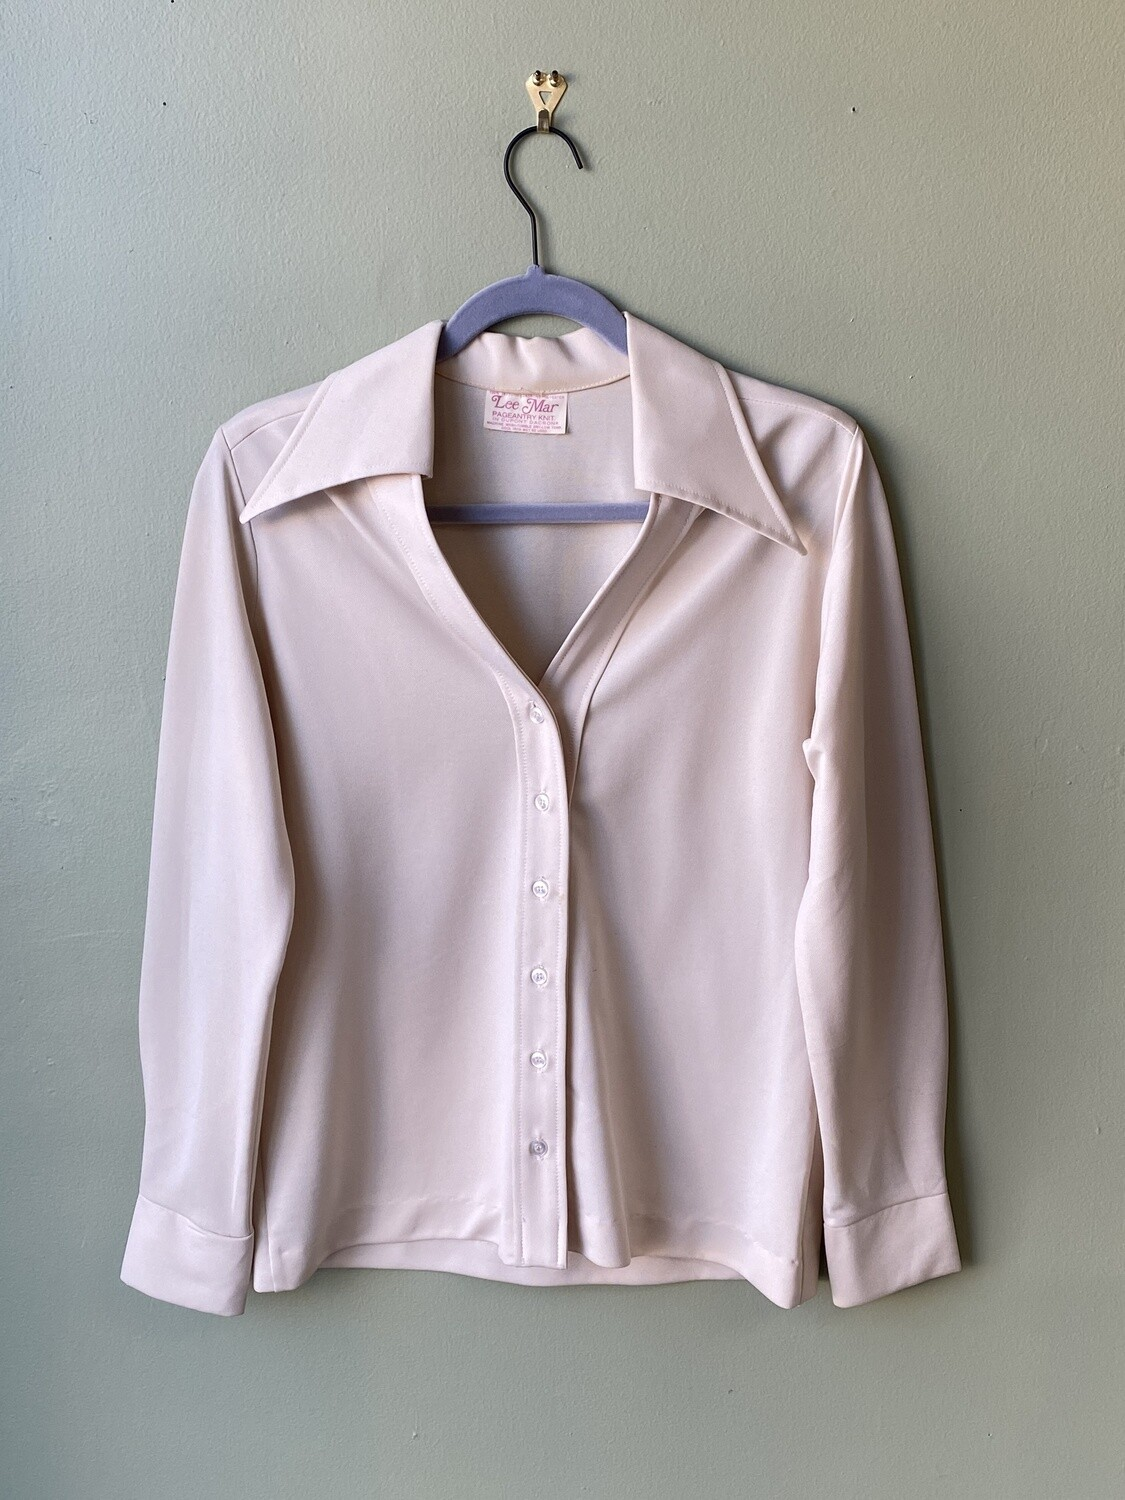 Vintage Lee Mar Pageantry Knit Blouse